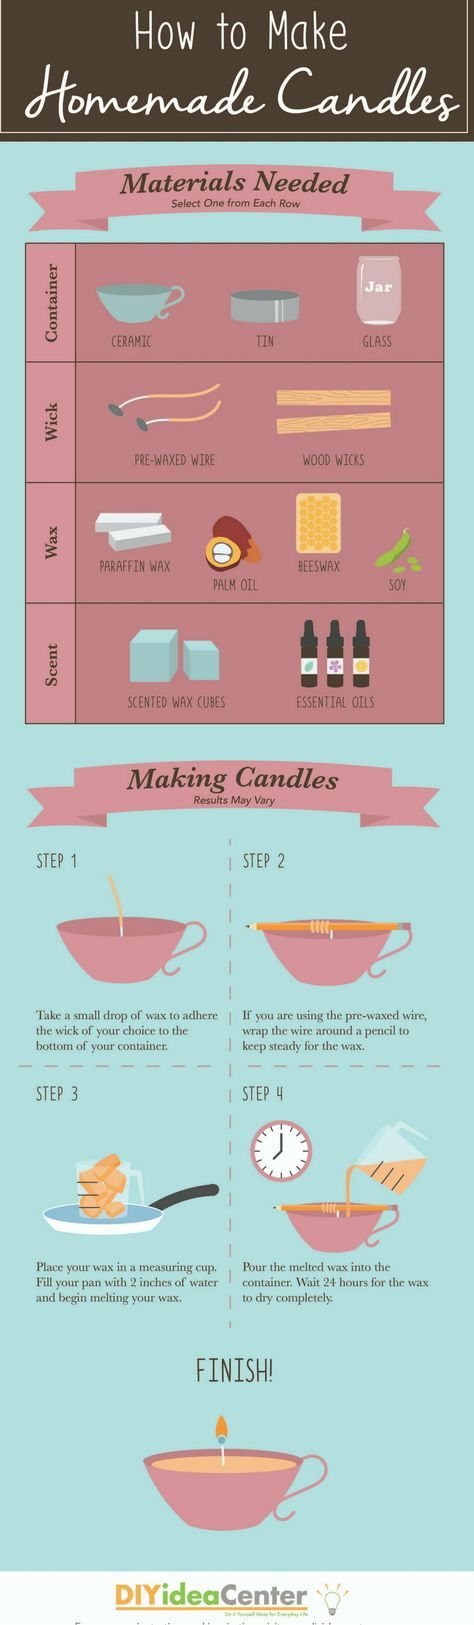 How to Make Homemade Candles: Learn how to make candles with this lovely DIY guide!